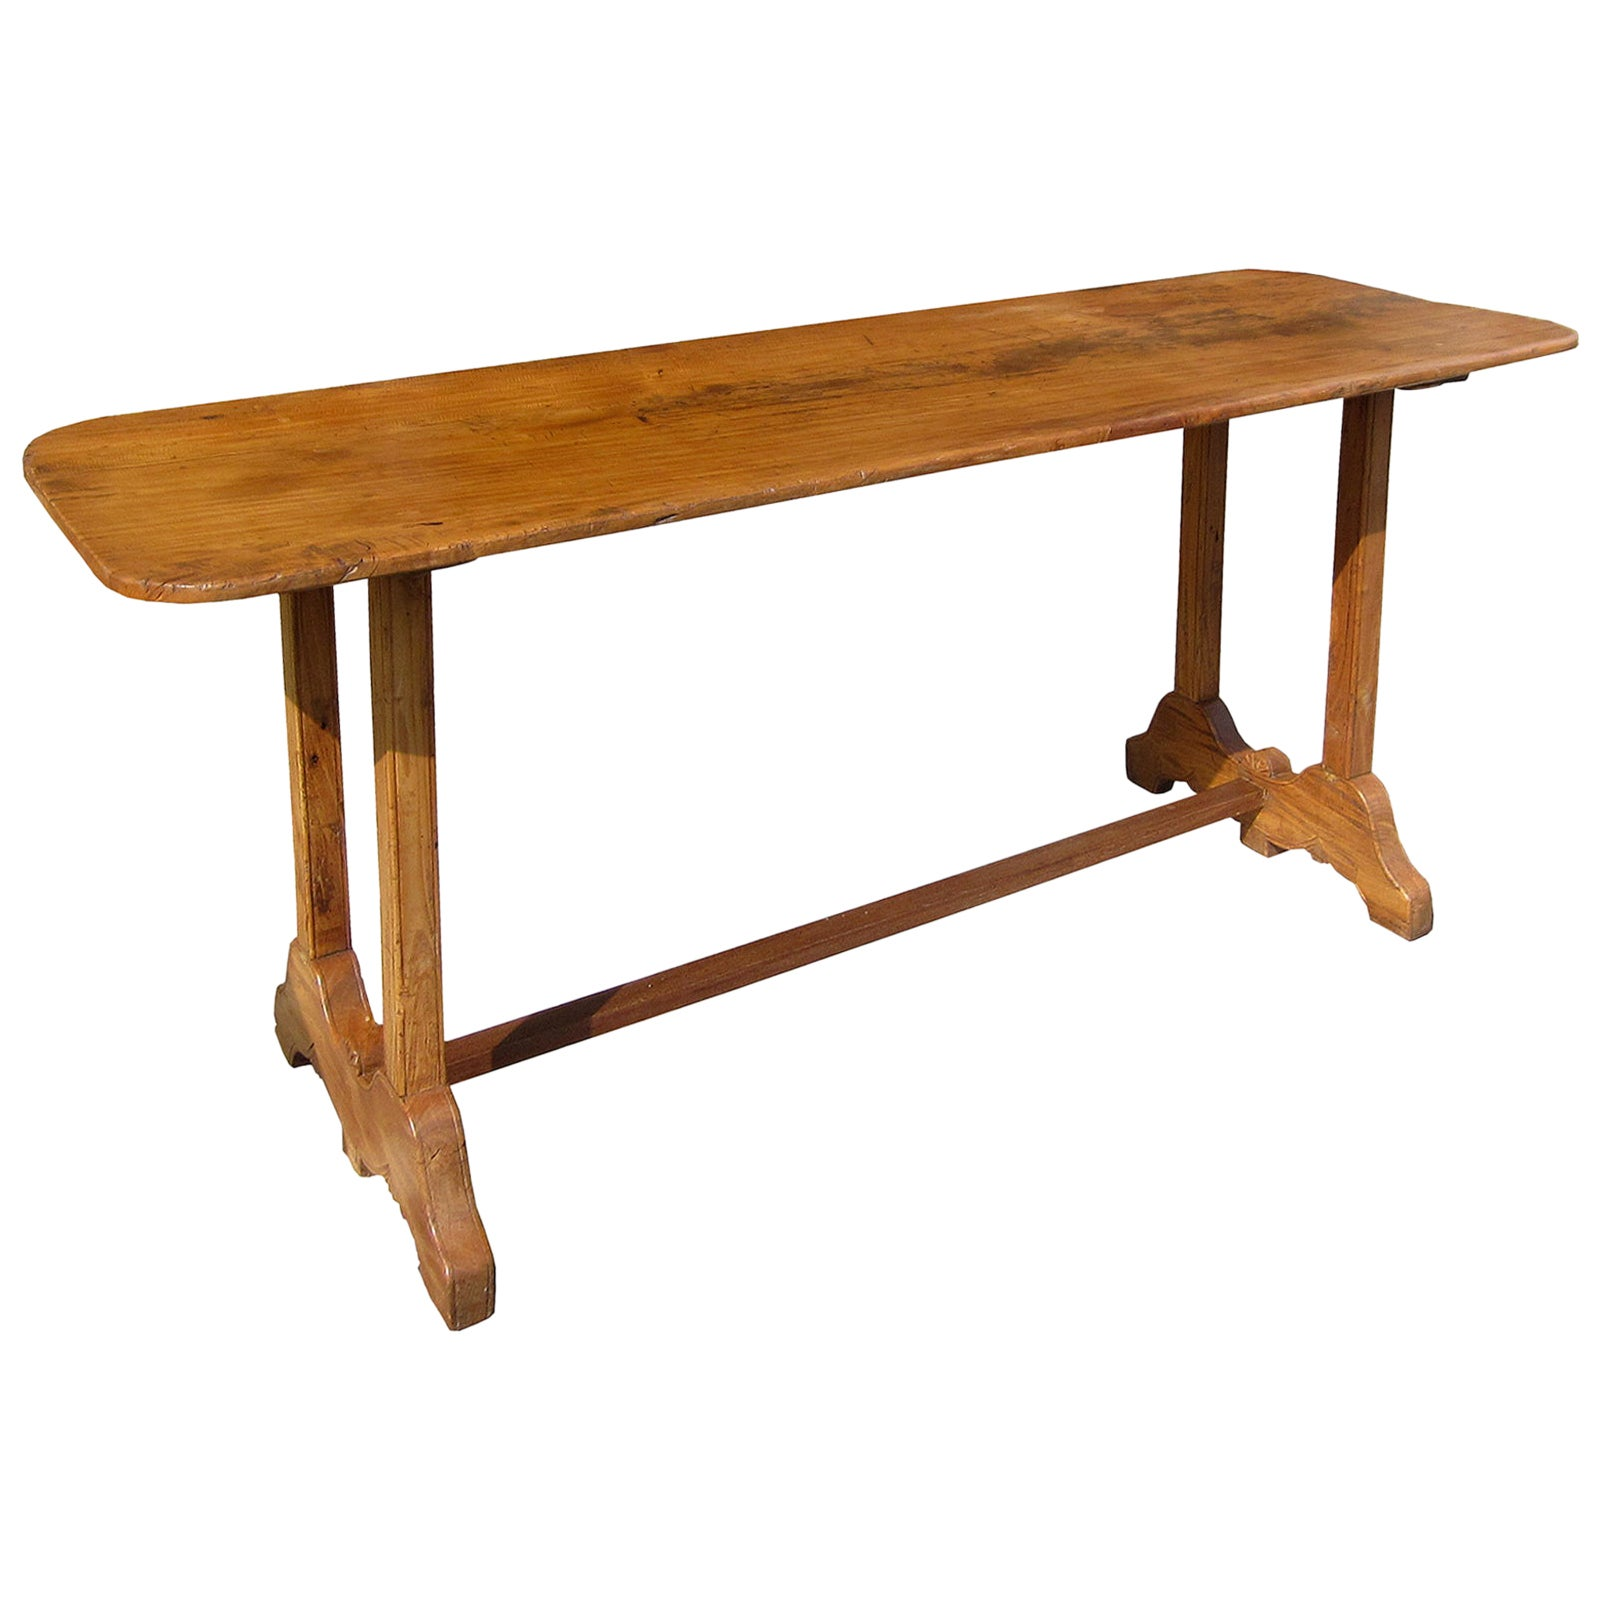 19th Century Continental Trestle Console Table, Probably Elmwood